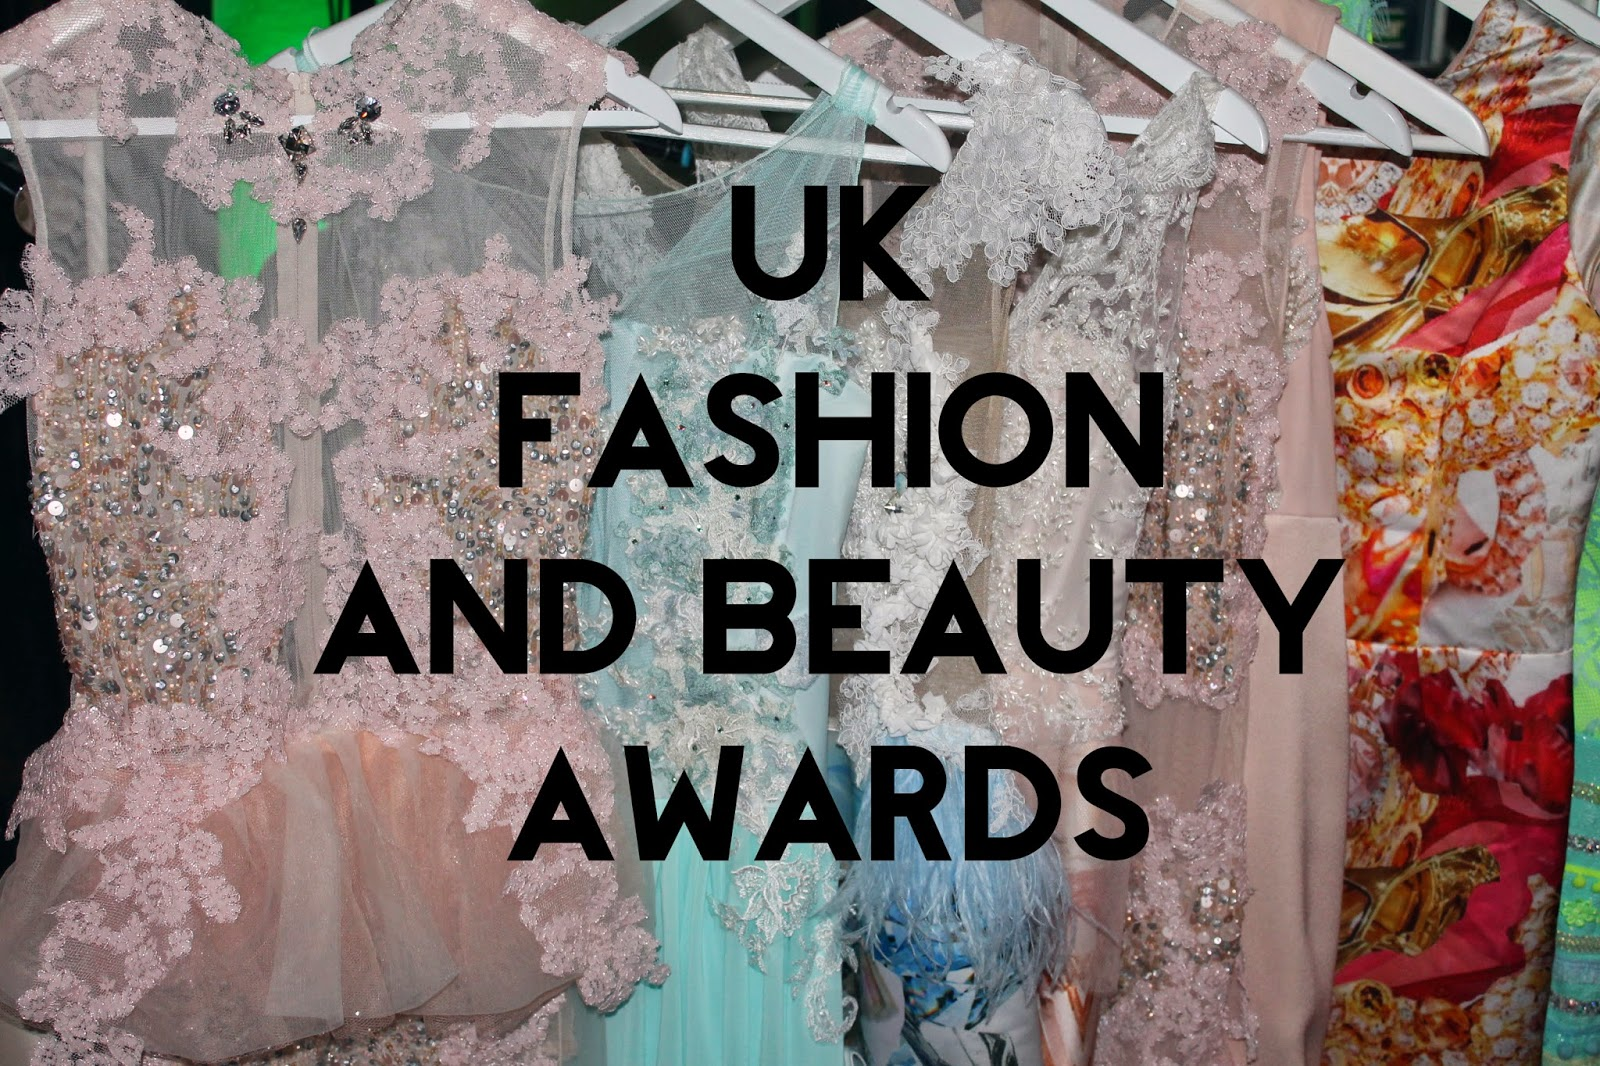 UK fashion and beauty awards 2014, liverpool fab awards 2014